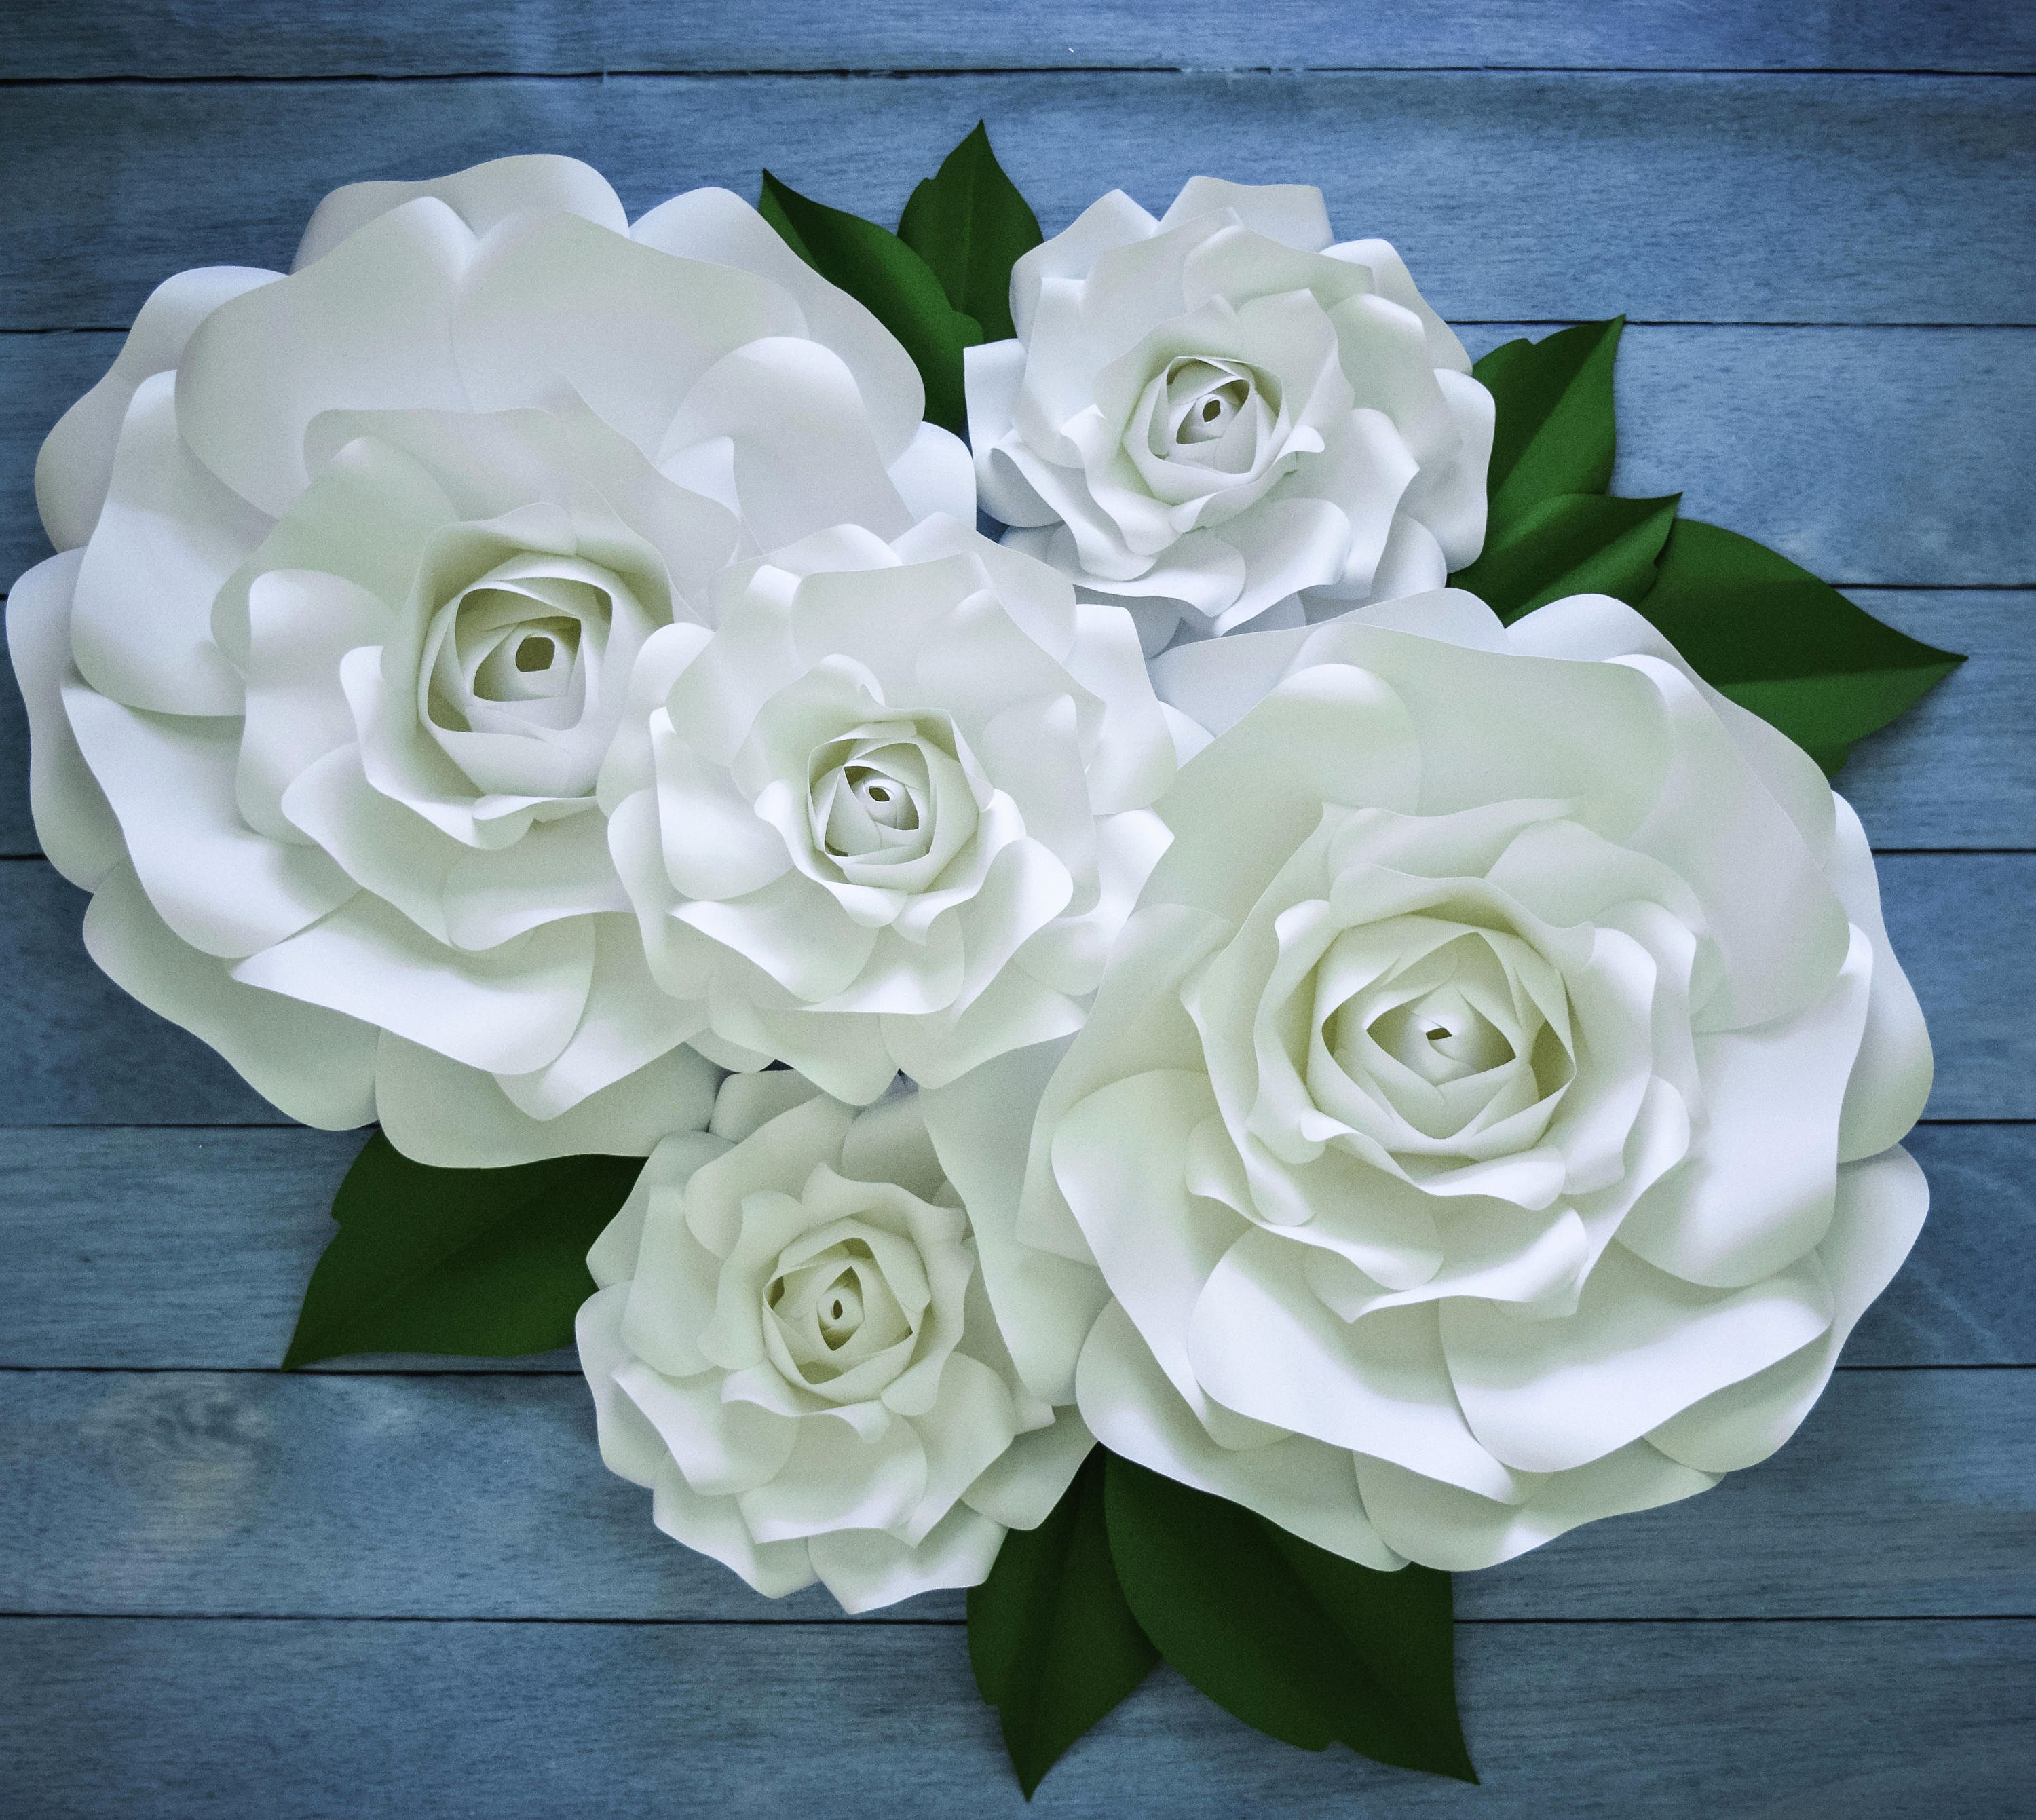 Template for Paper Flowers Awesome Paper Rose Template Giant Paper Flower Printable